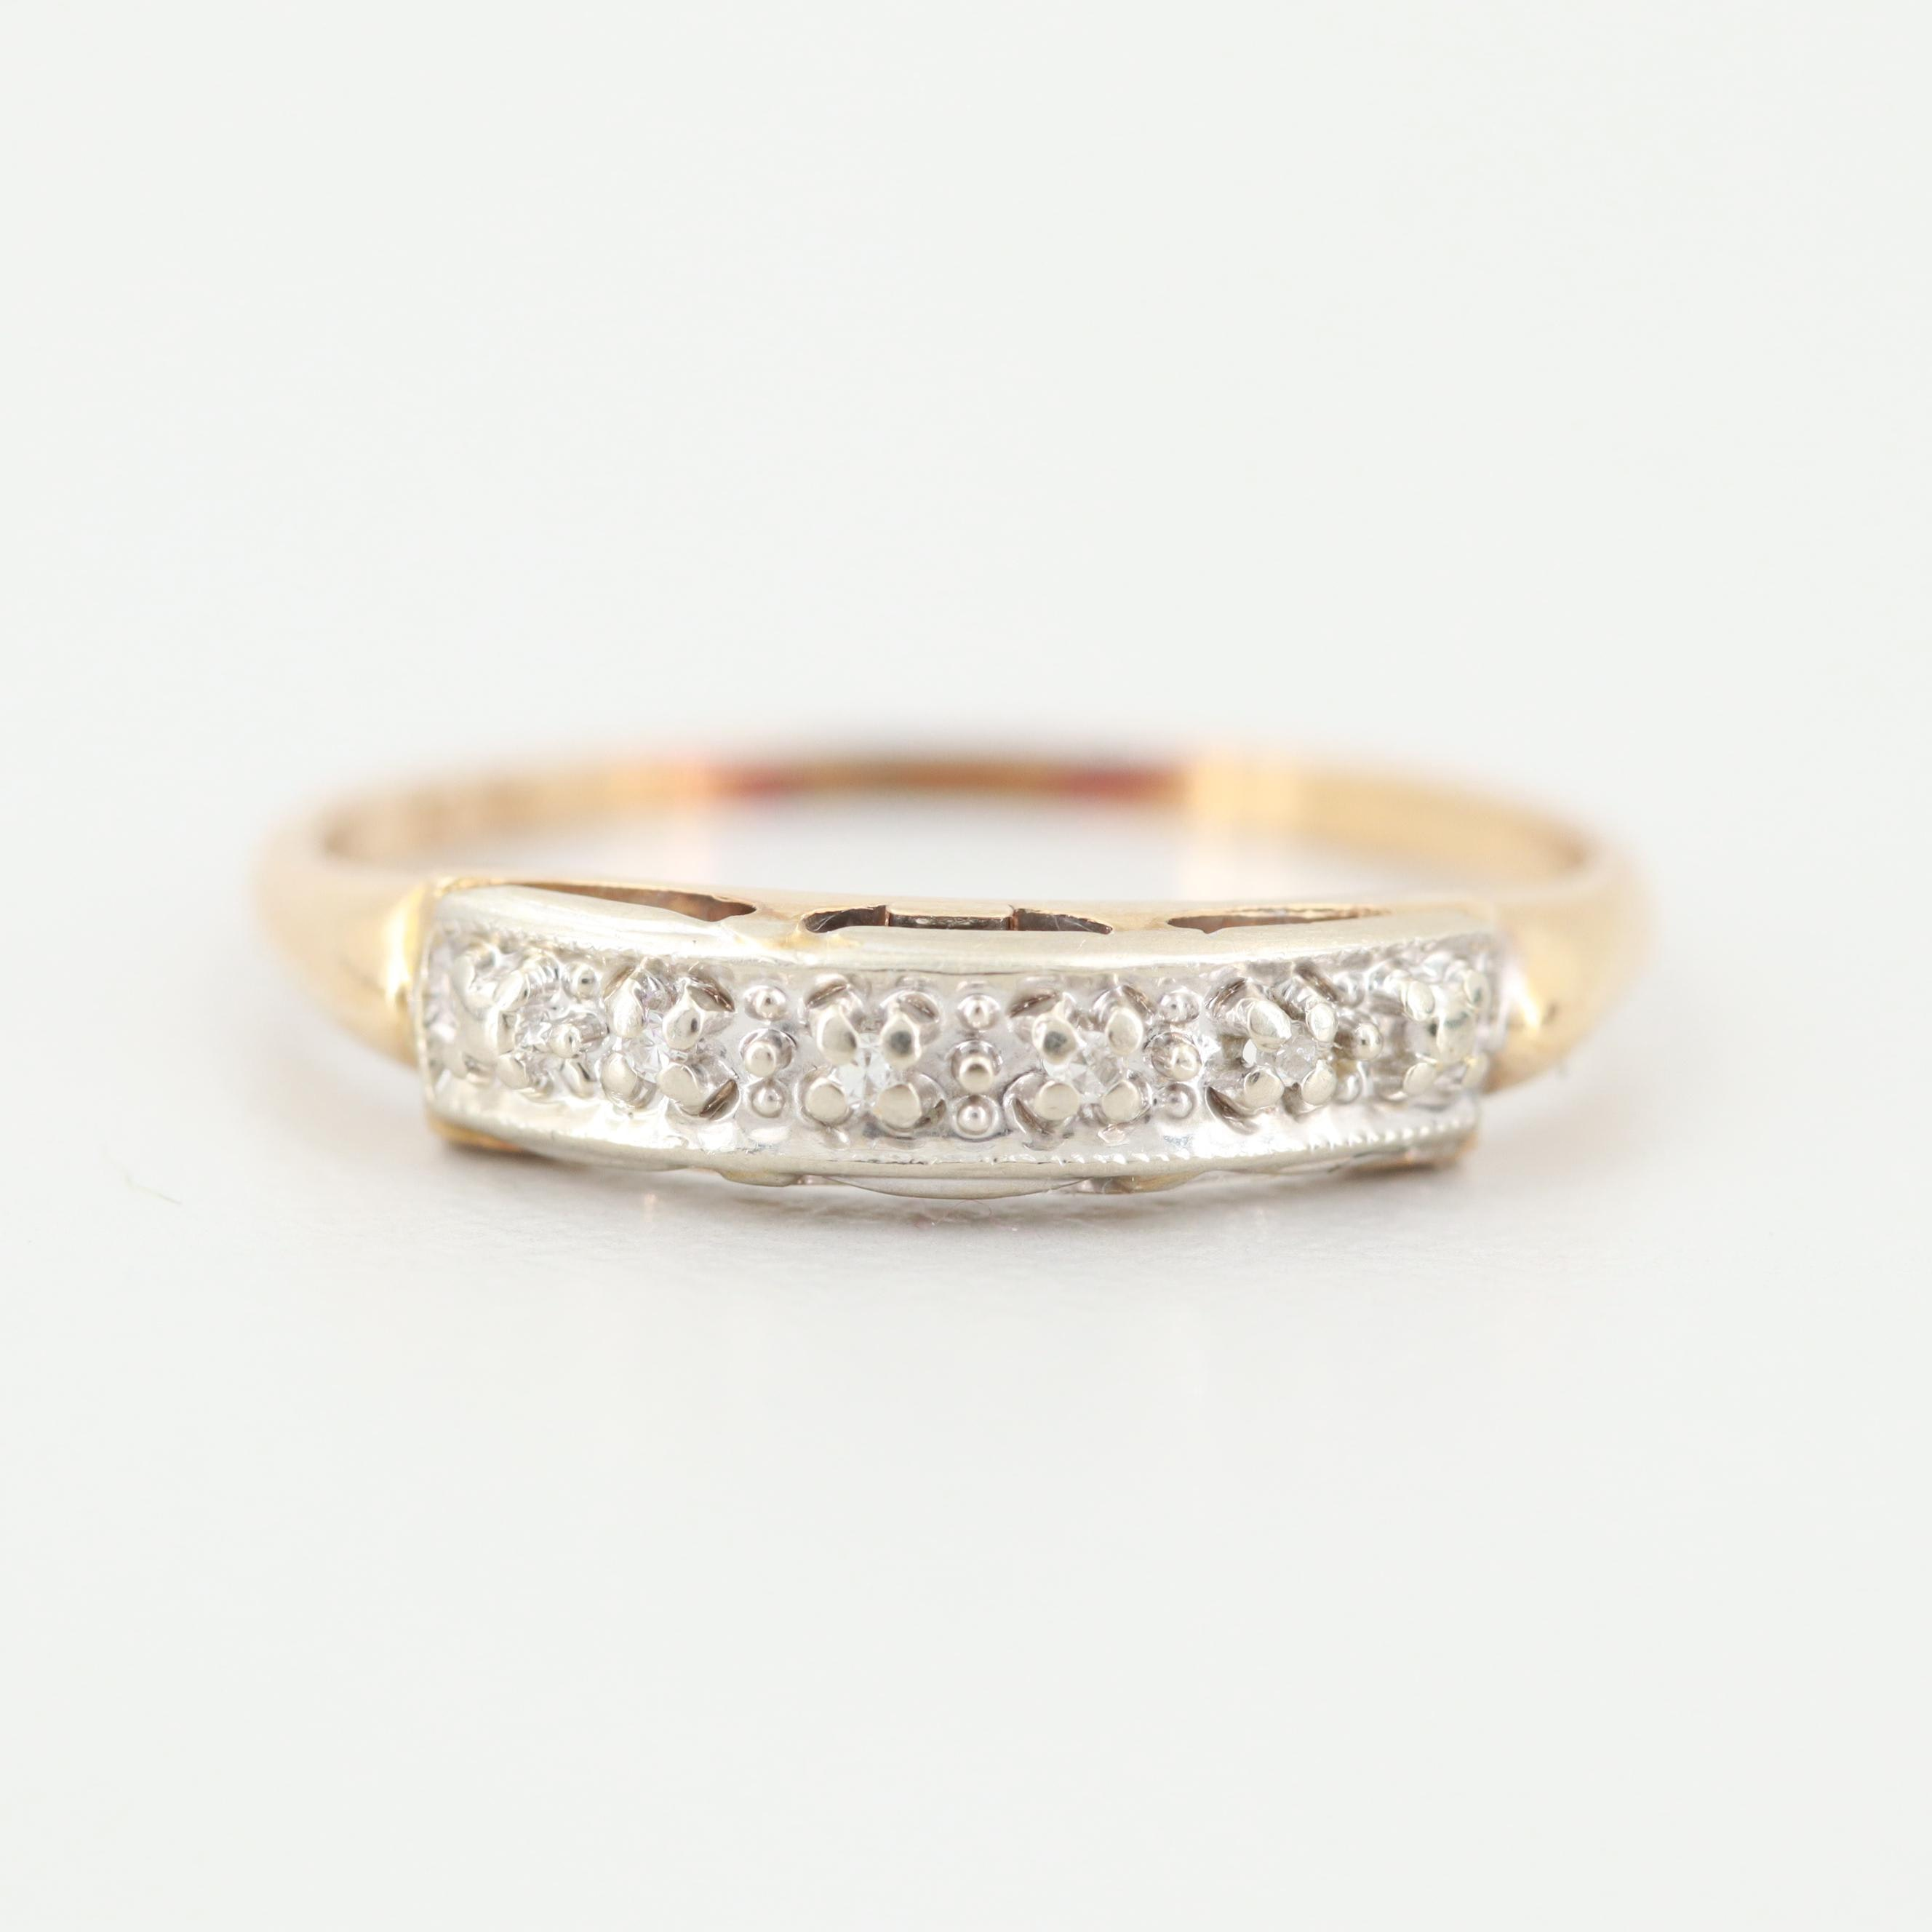 Vintage 14K Yellow Gold Diamond Ring with 14K White Gold Setting